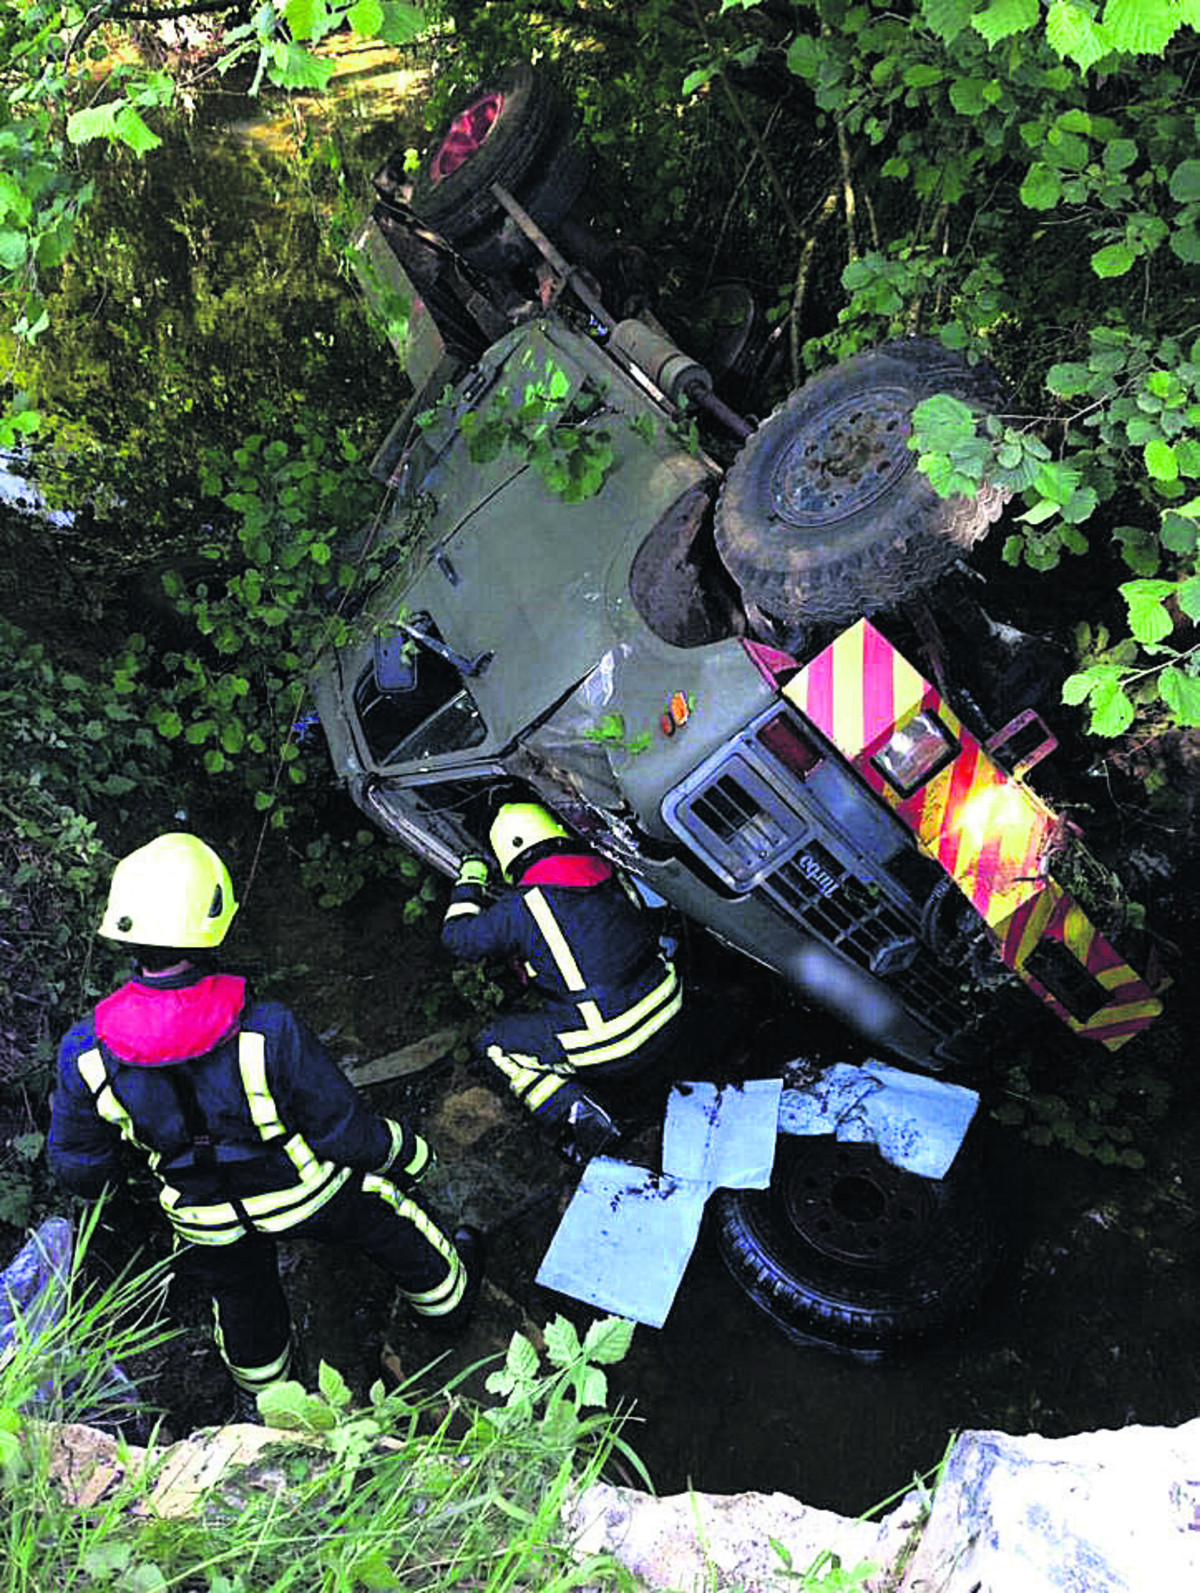 Crashing truck into brick wall near Calne saved others, say police